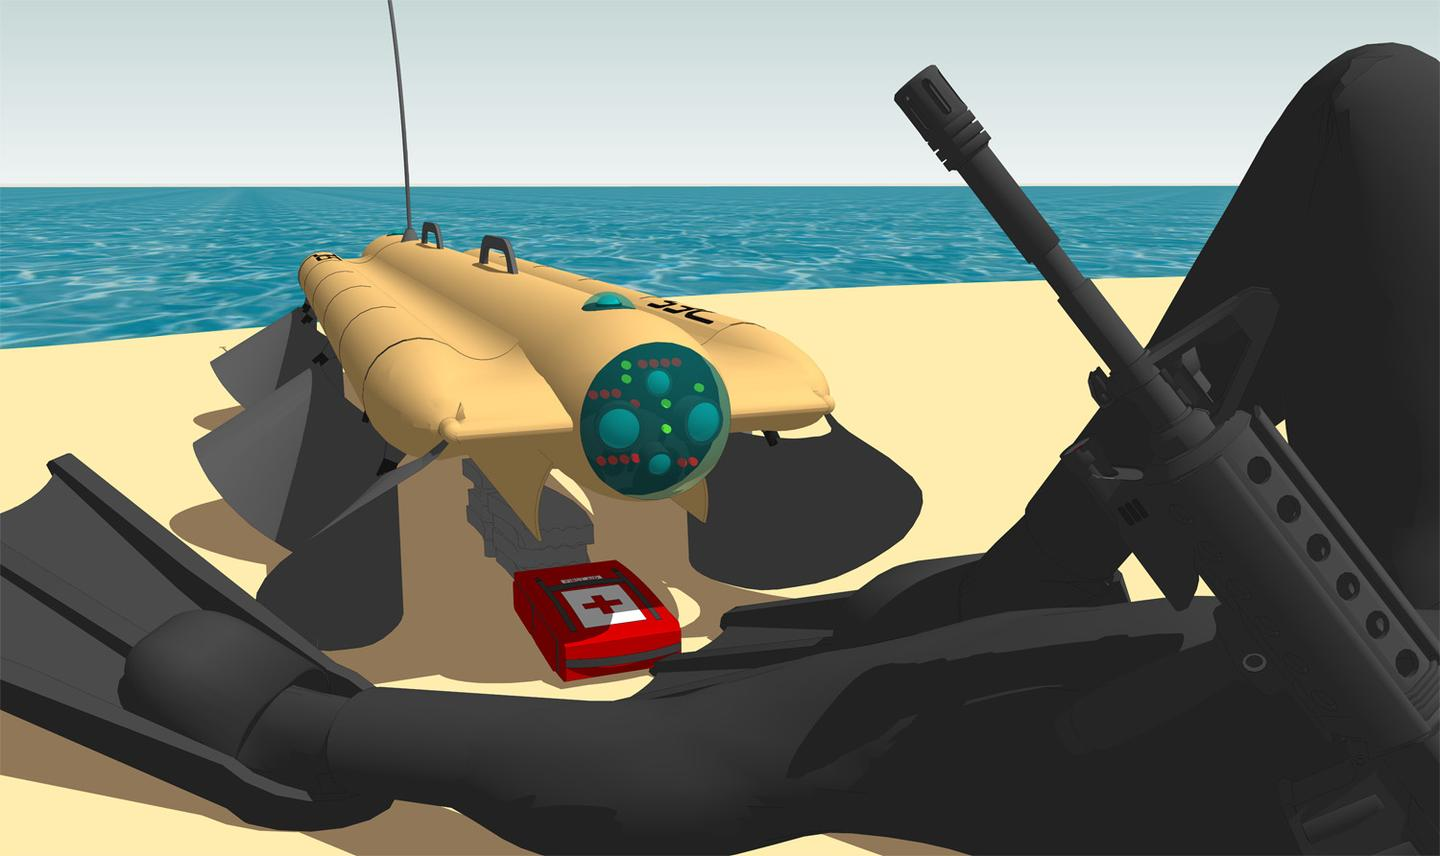 The Velox robot could be used to carry medical supplies or ammunition through the water to troops on the beach